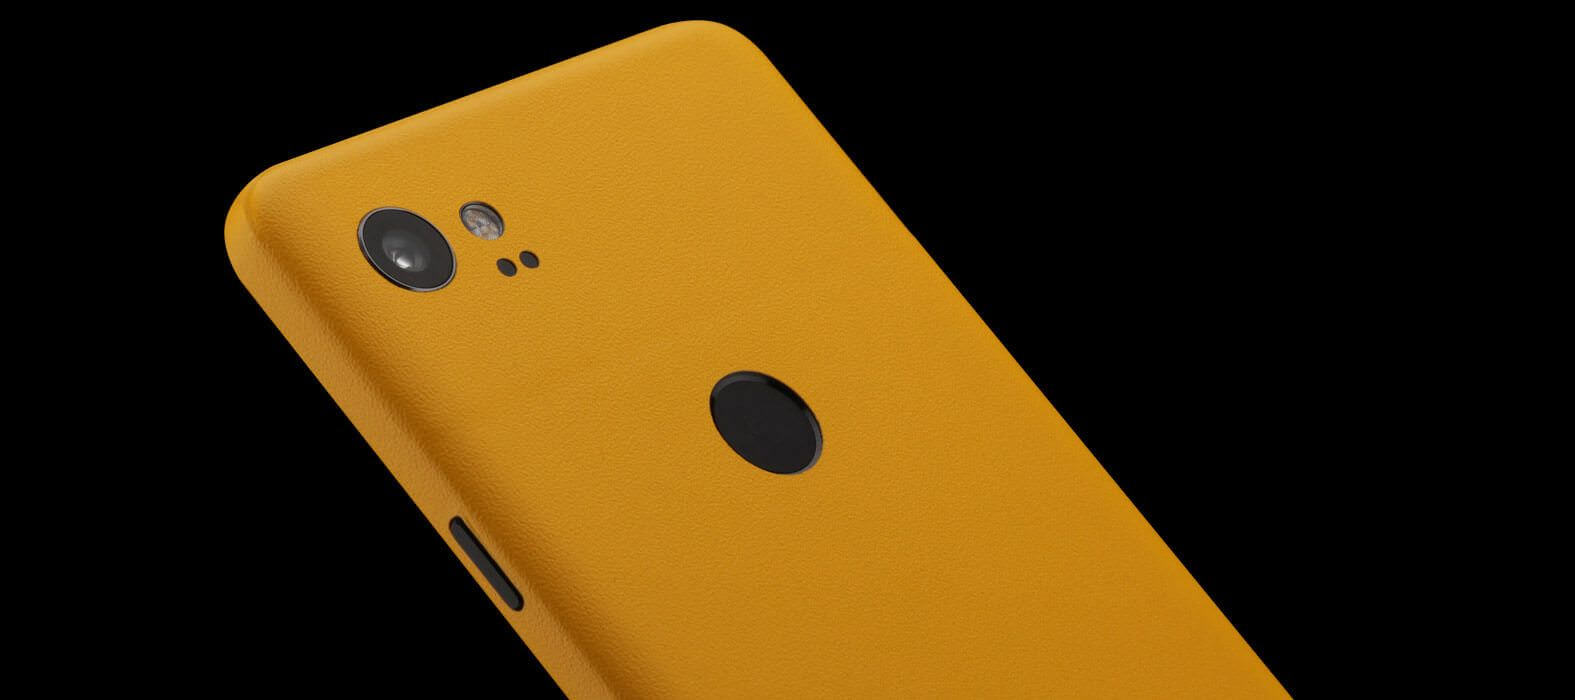 Pixel 2 XL Skins Sandstone Yellow Wraps & Decals